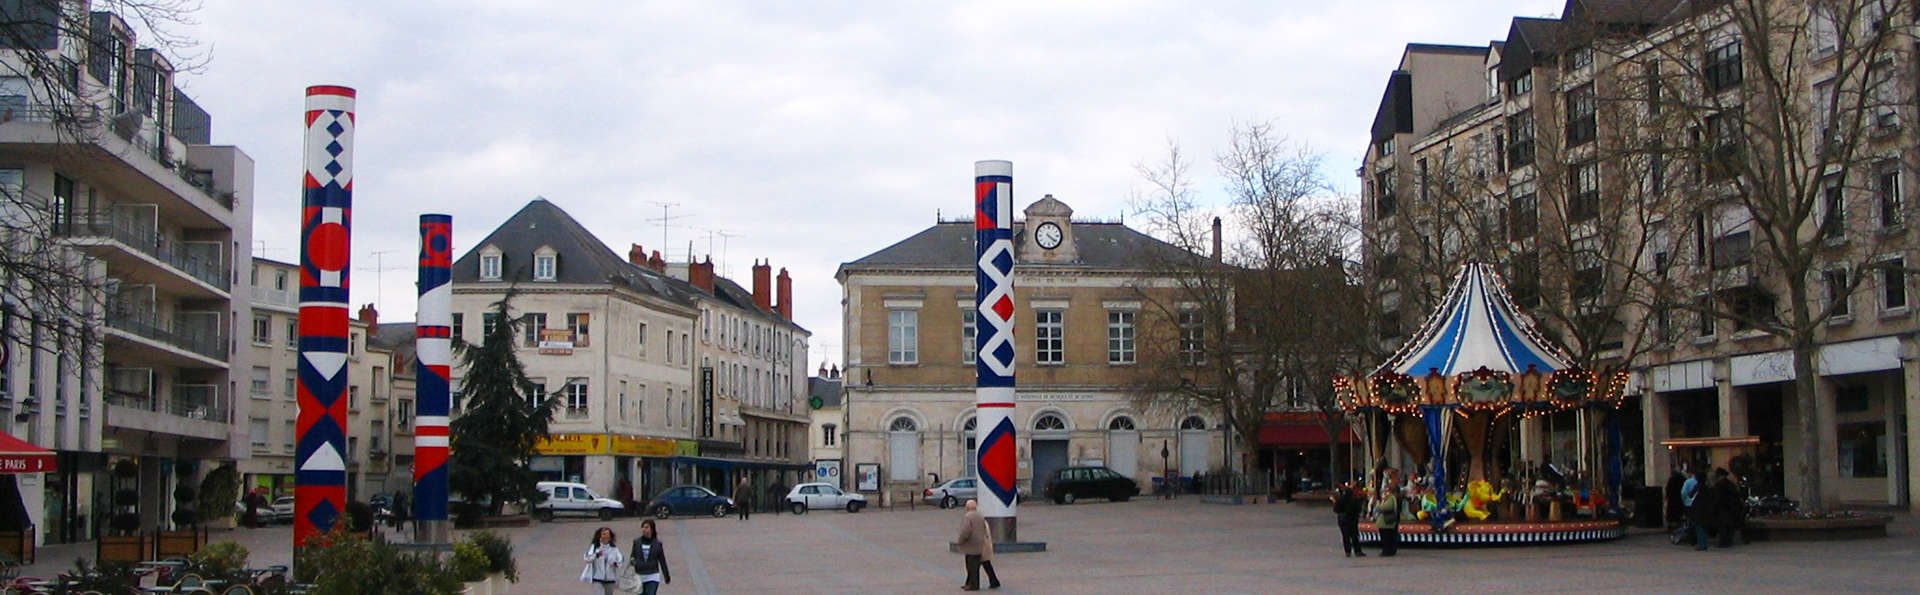 Le Relais Saint Jacques - edit_Chateauroux_-_Place_de_la_Republique.jpg